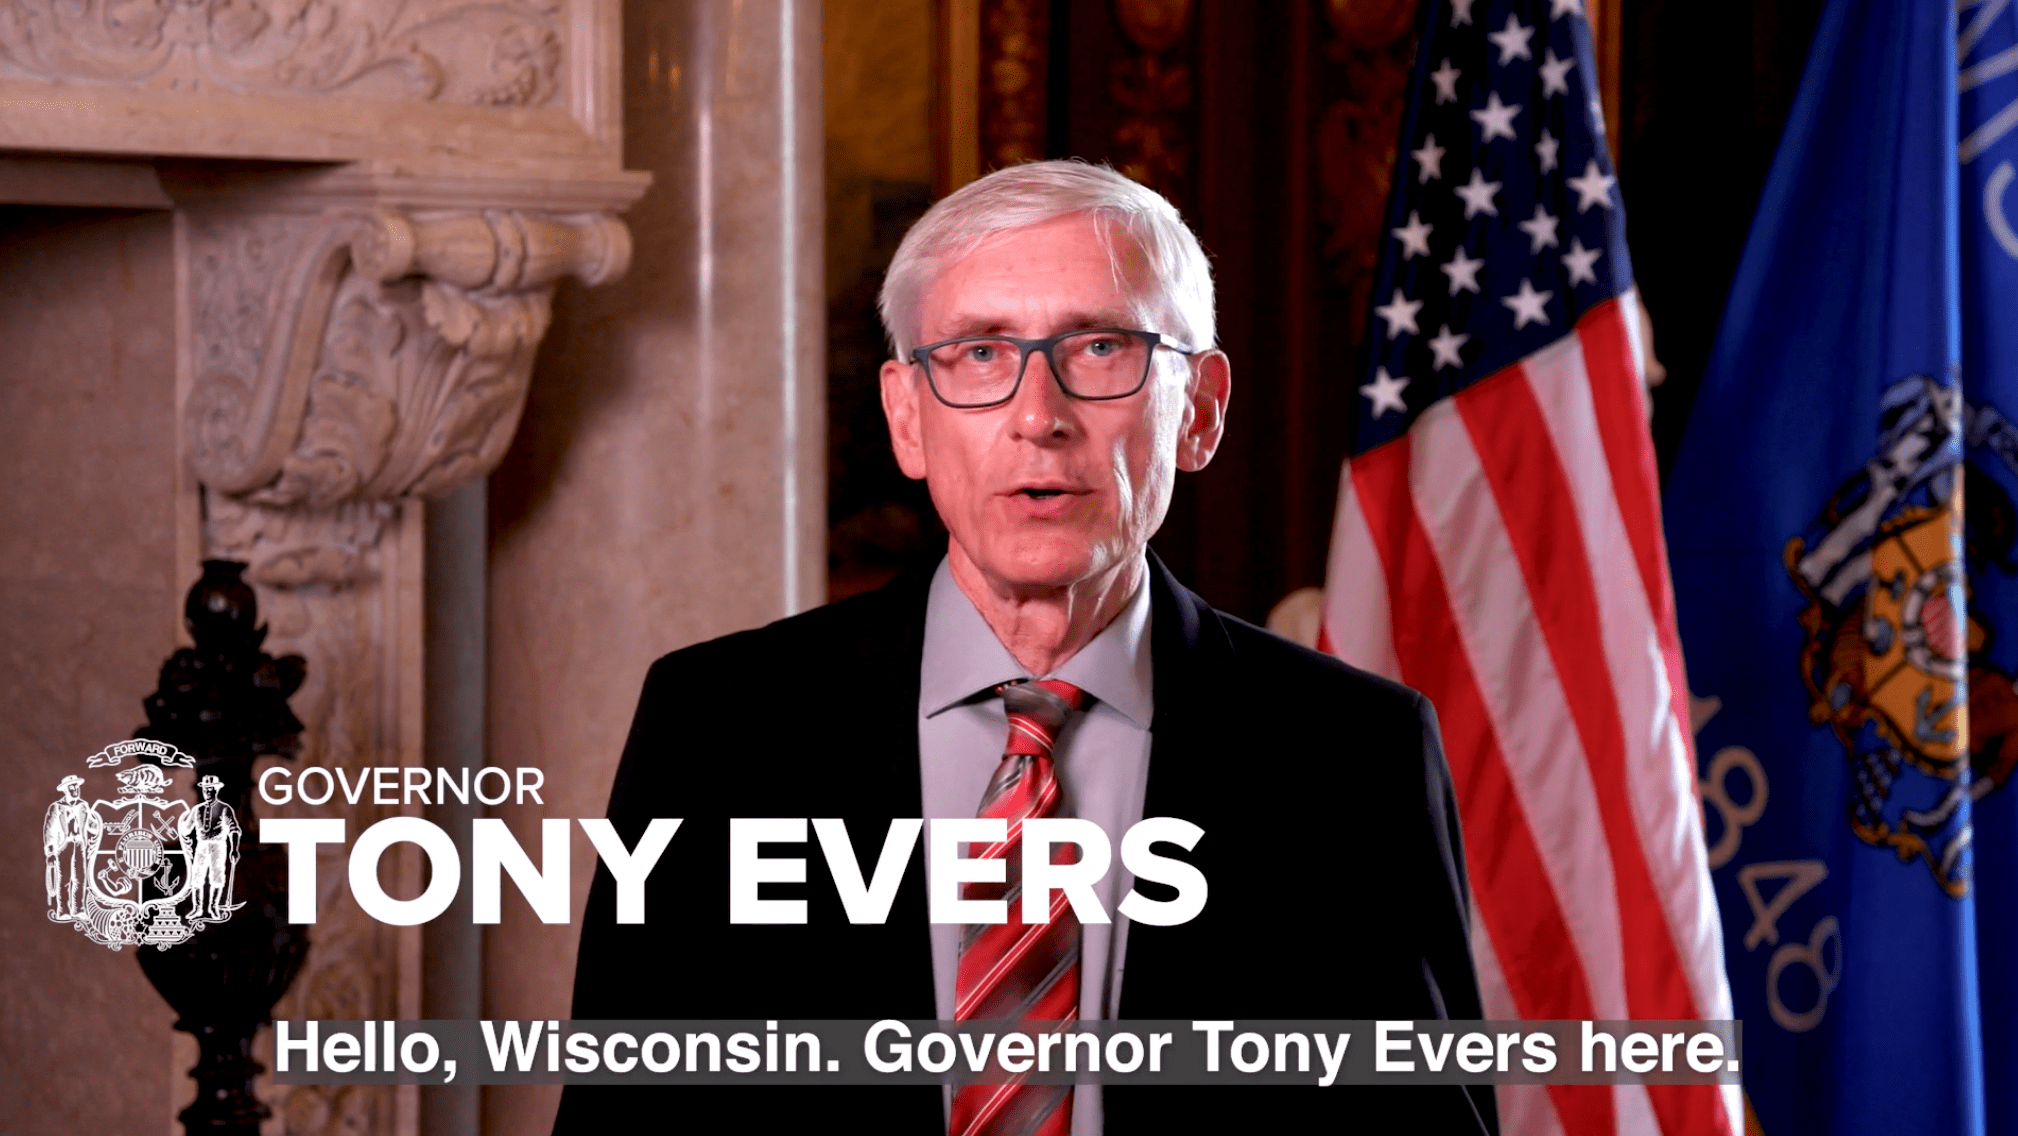 Tony Evers Wisconsin Governor